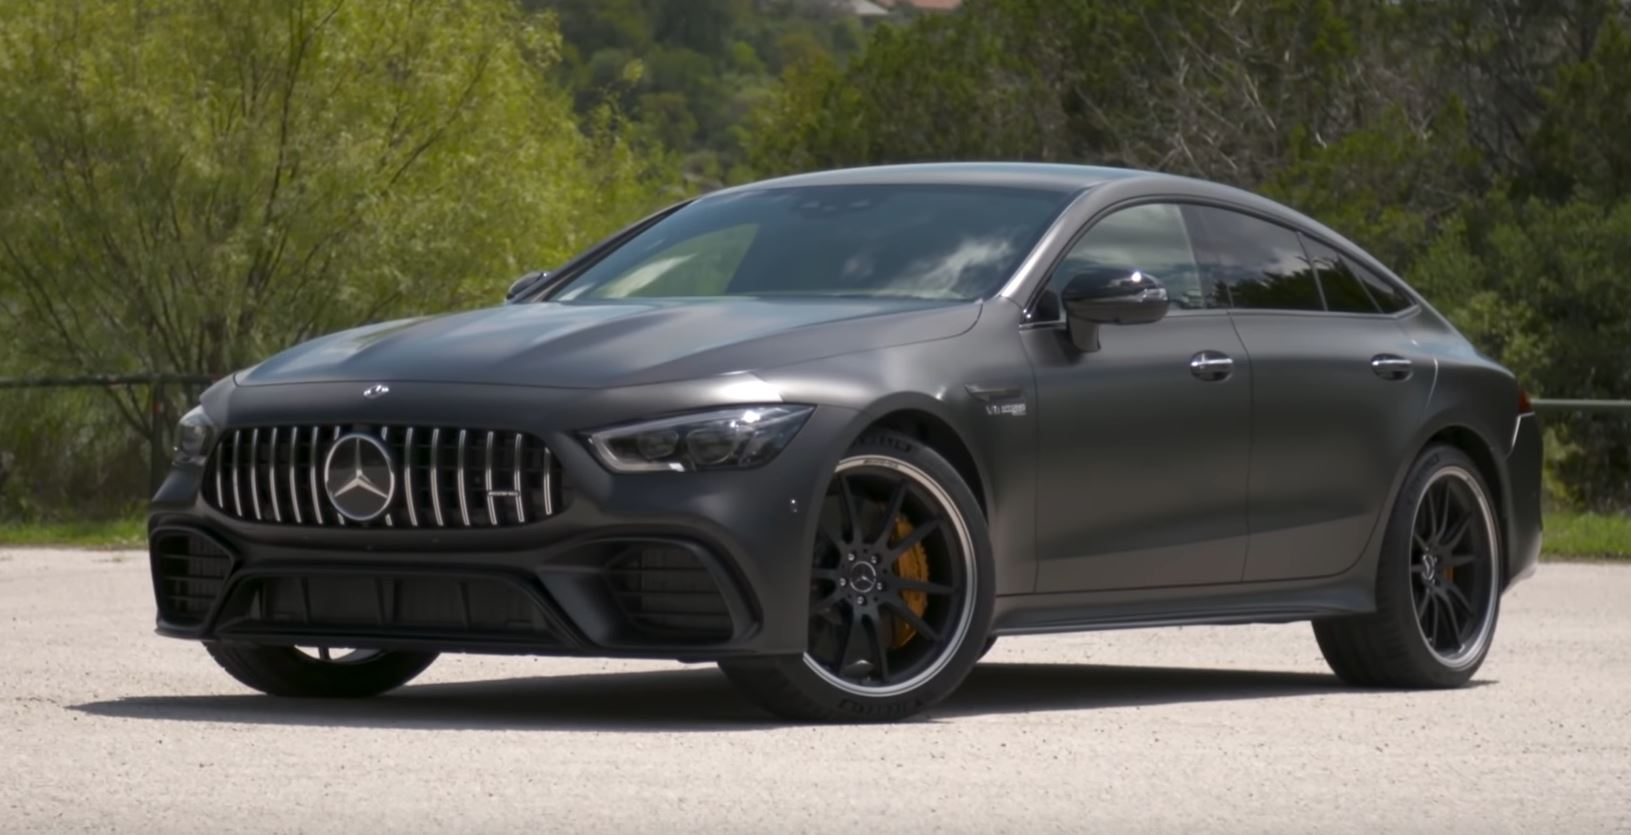 mercedes amg gt 63 s 4 door first review suggests it 39 s slower than e63 autoevolution. Black Bedroom Furniture Sets. Home Design Ideas